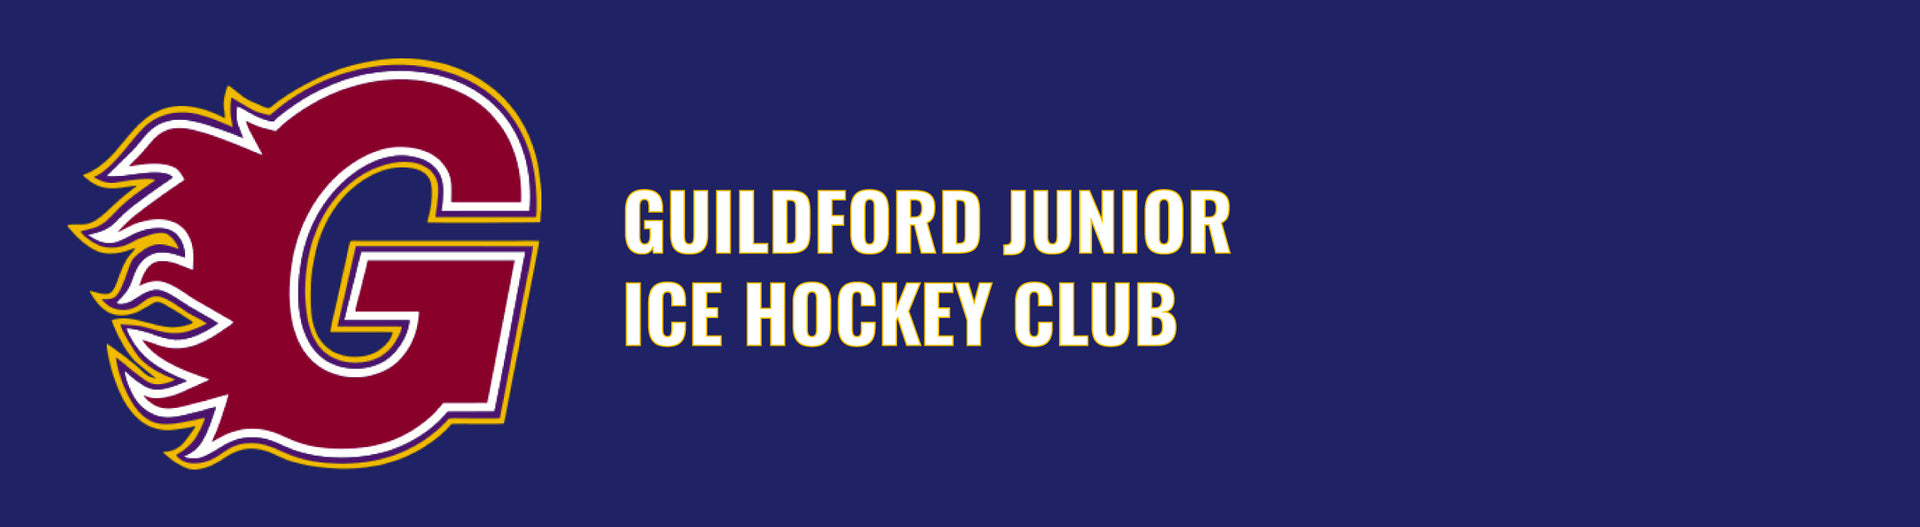 Guildford Junior Ice Hockey Club